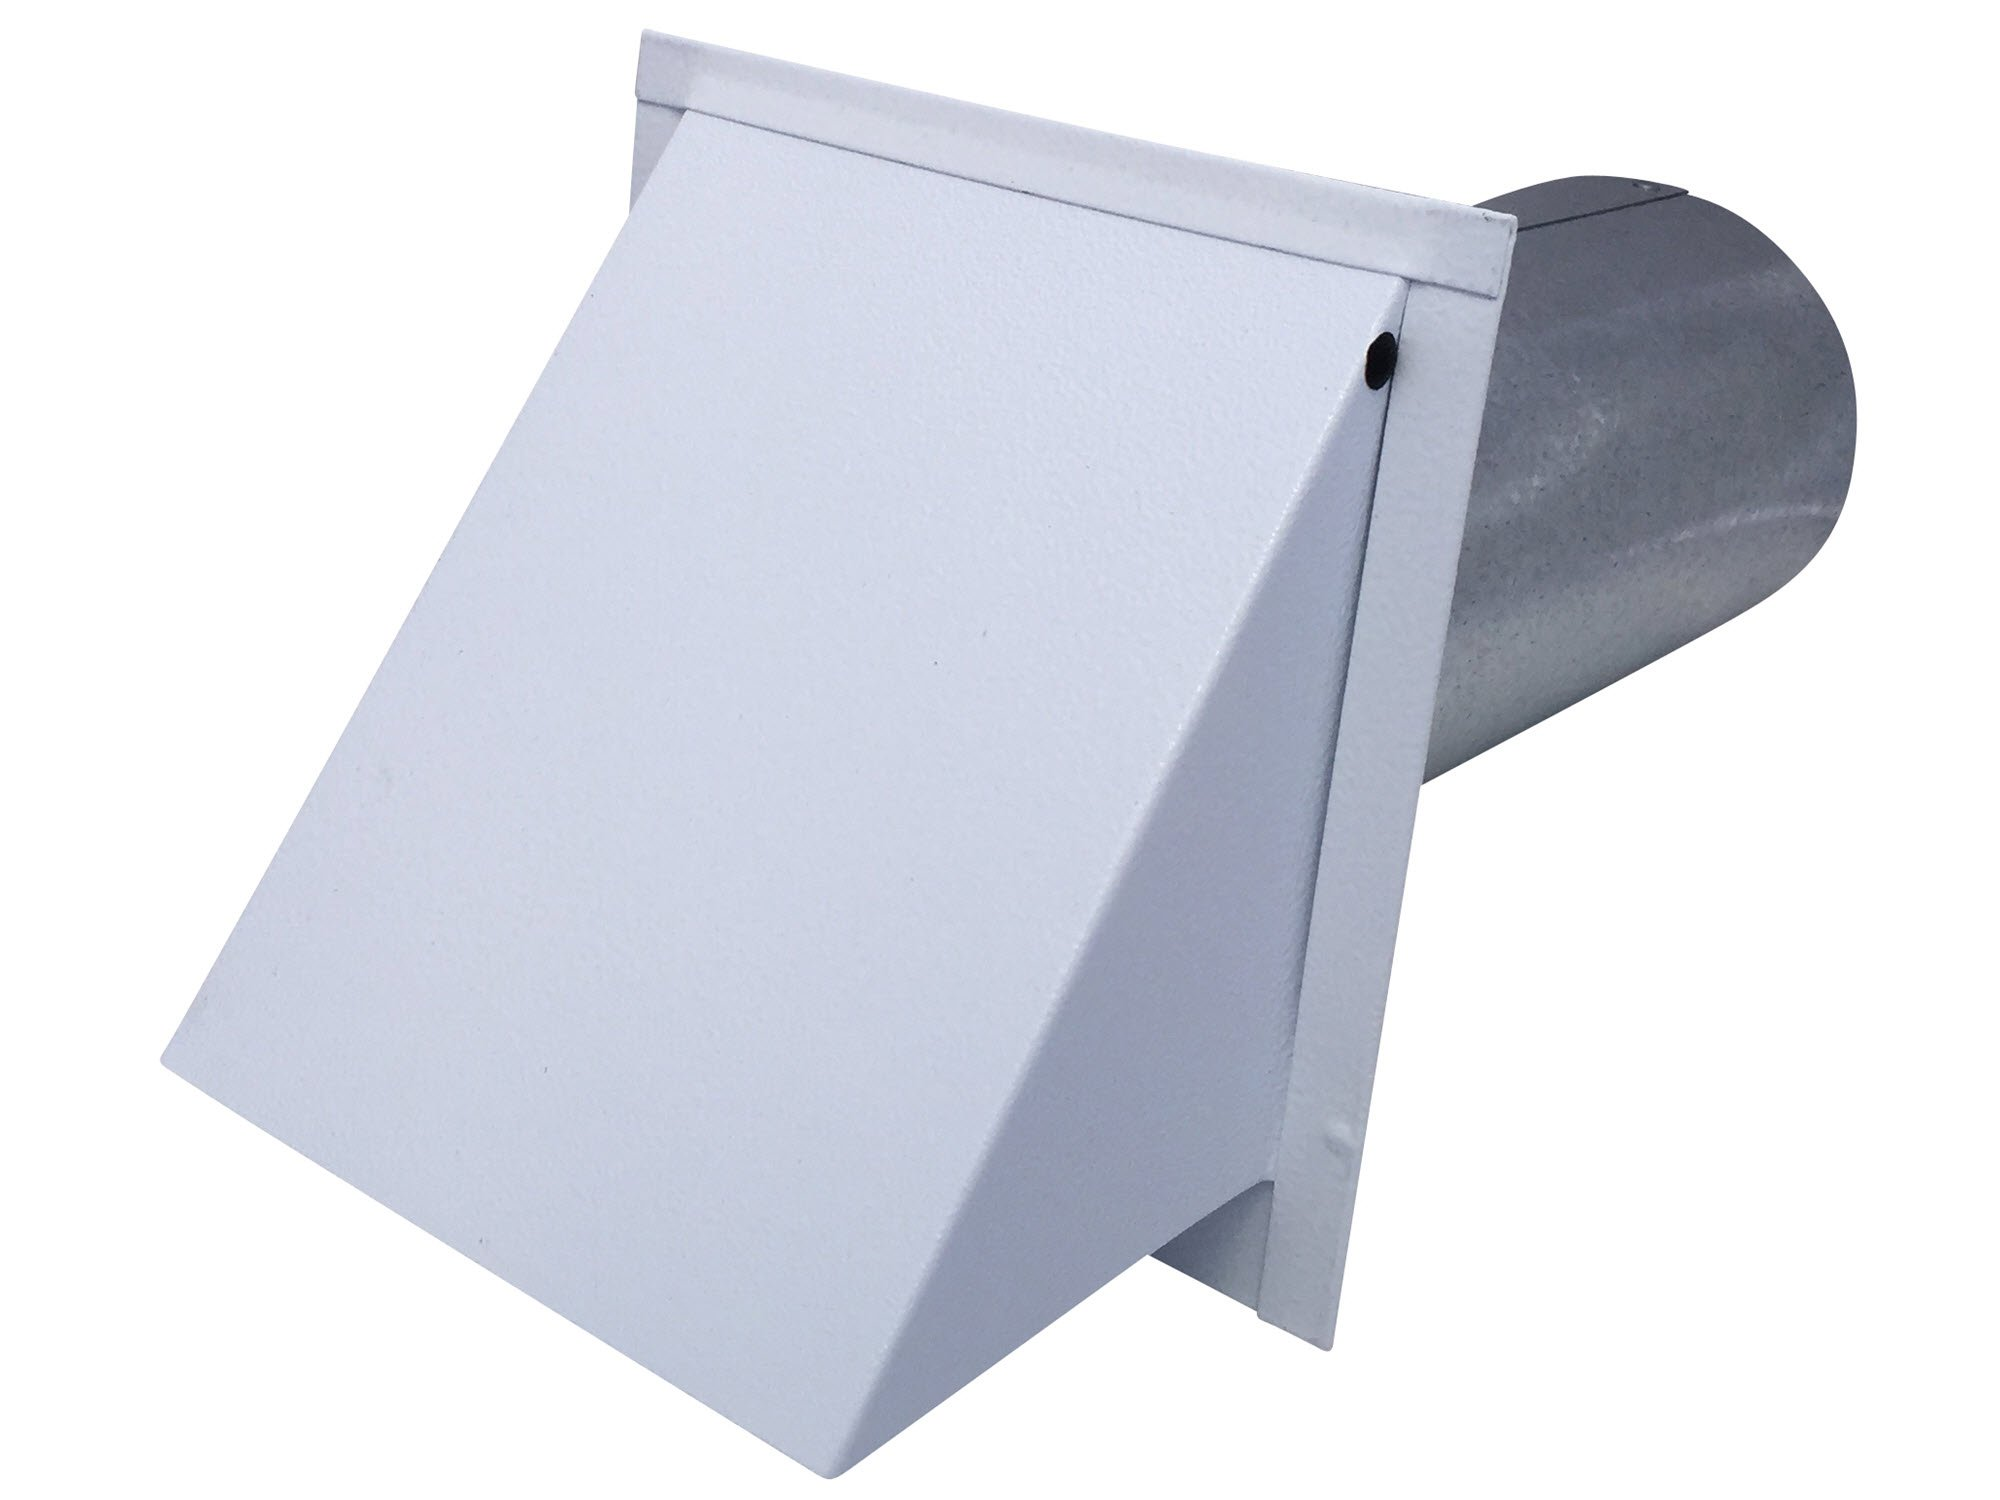 Dryer Wall Vent White Powder Coated Steel (Standard 4 Inch Diameter Exhaust) - Vent Works